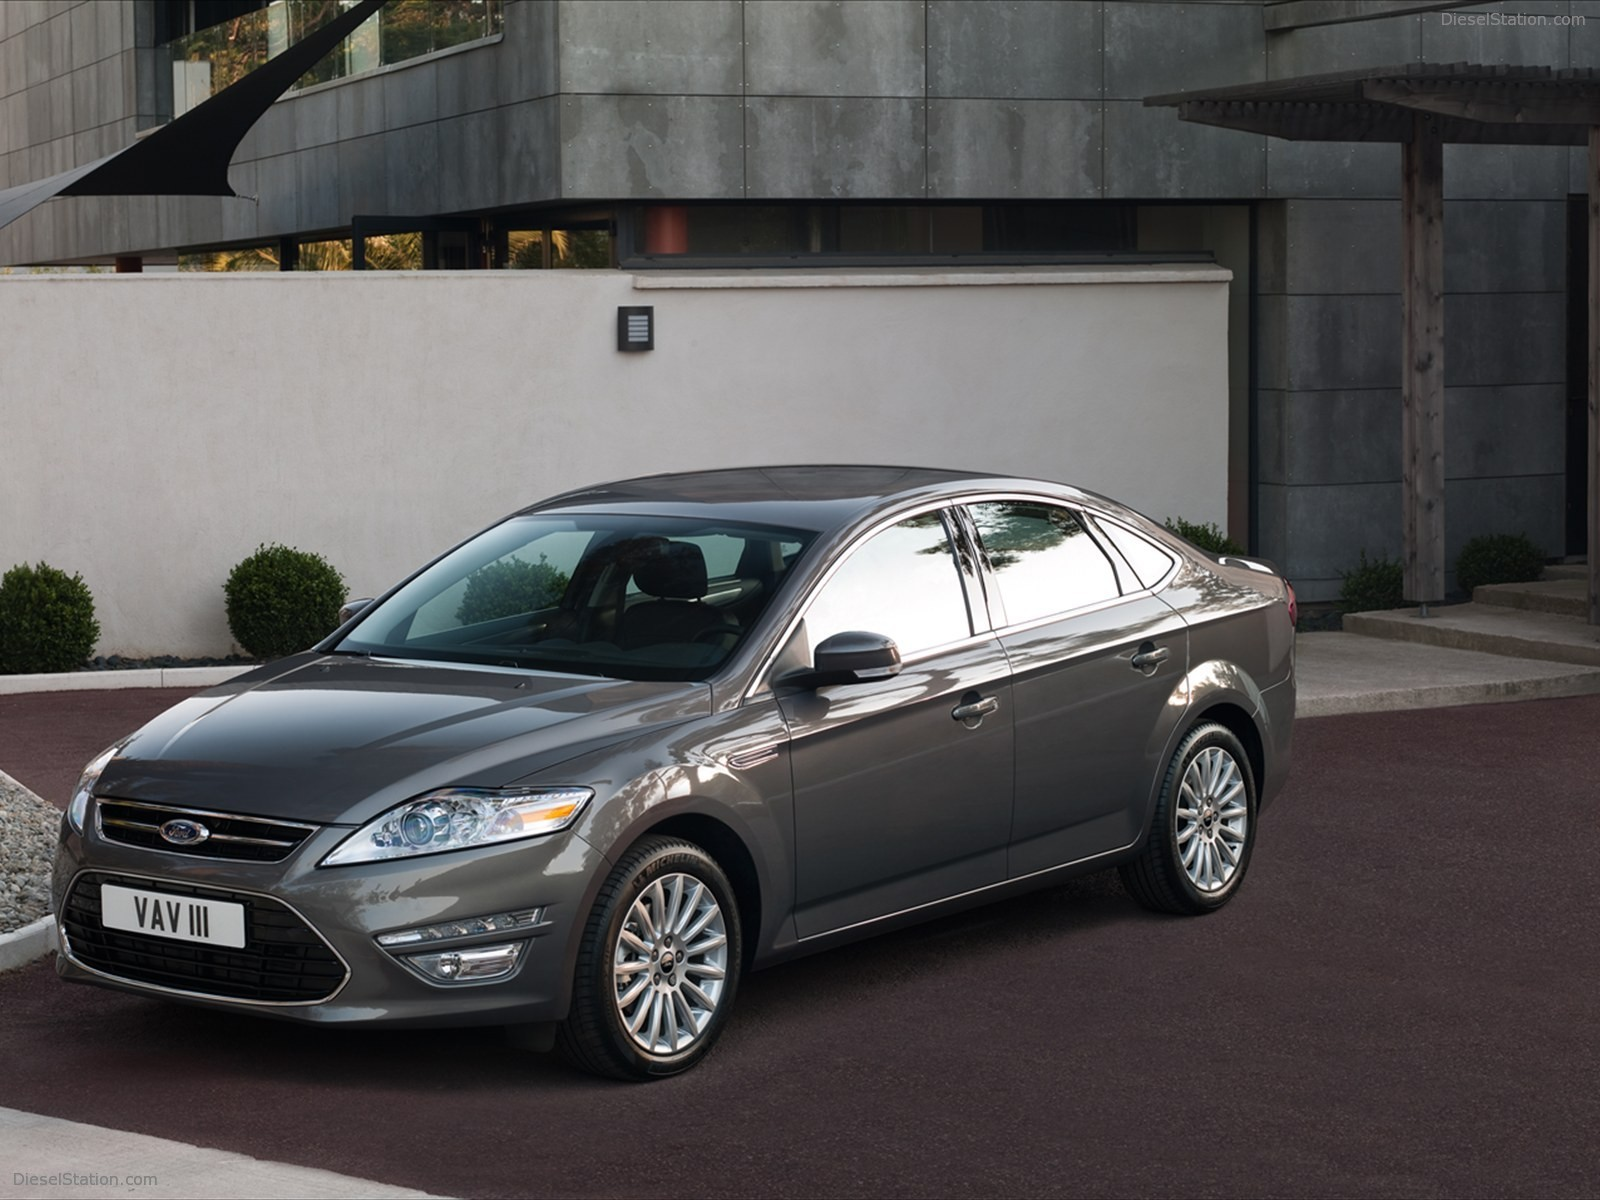 2011 Ford Mondeo #14